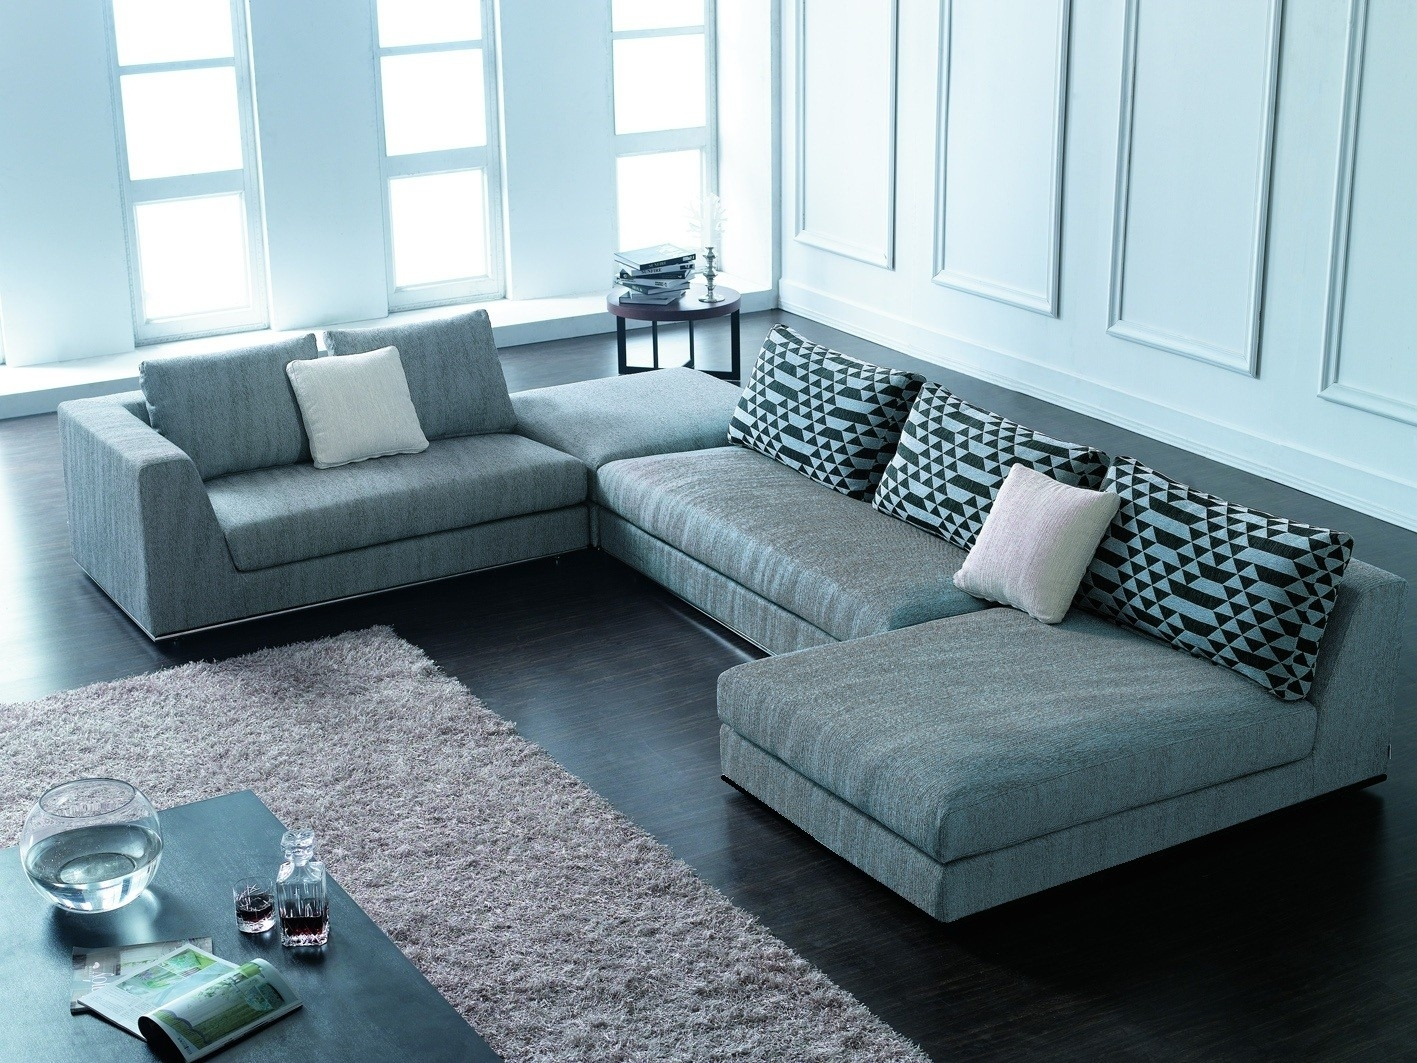 Most Comfortable Sectional Couches — Cabinets, Beds, Sofas And intended for Modern Sectional Sofas (Image 8 of 10)